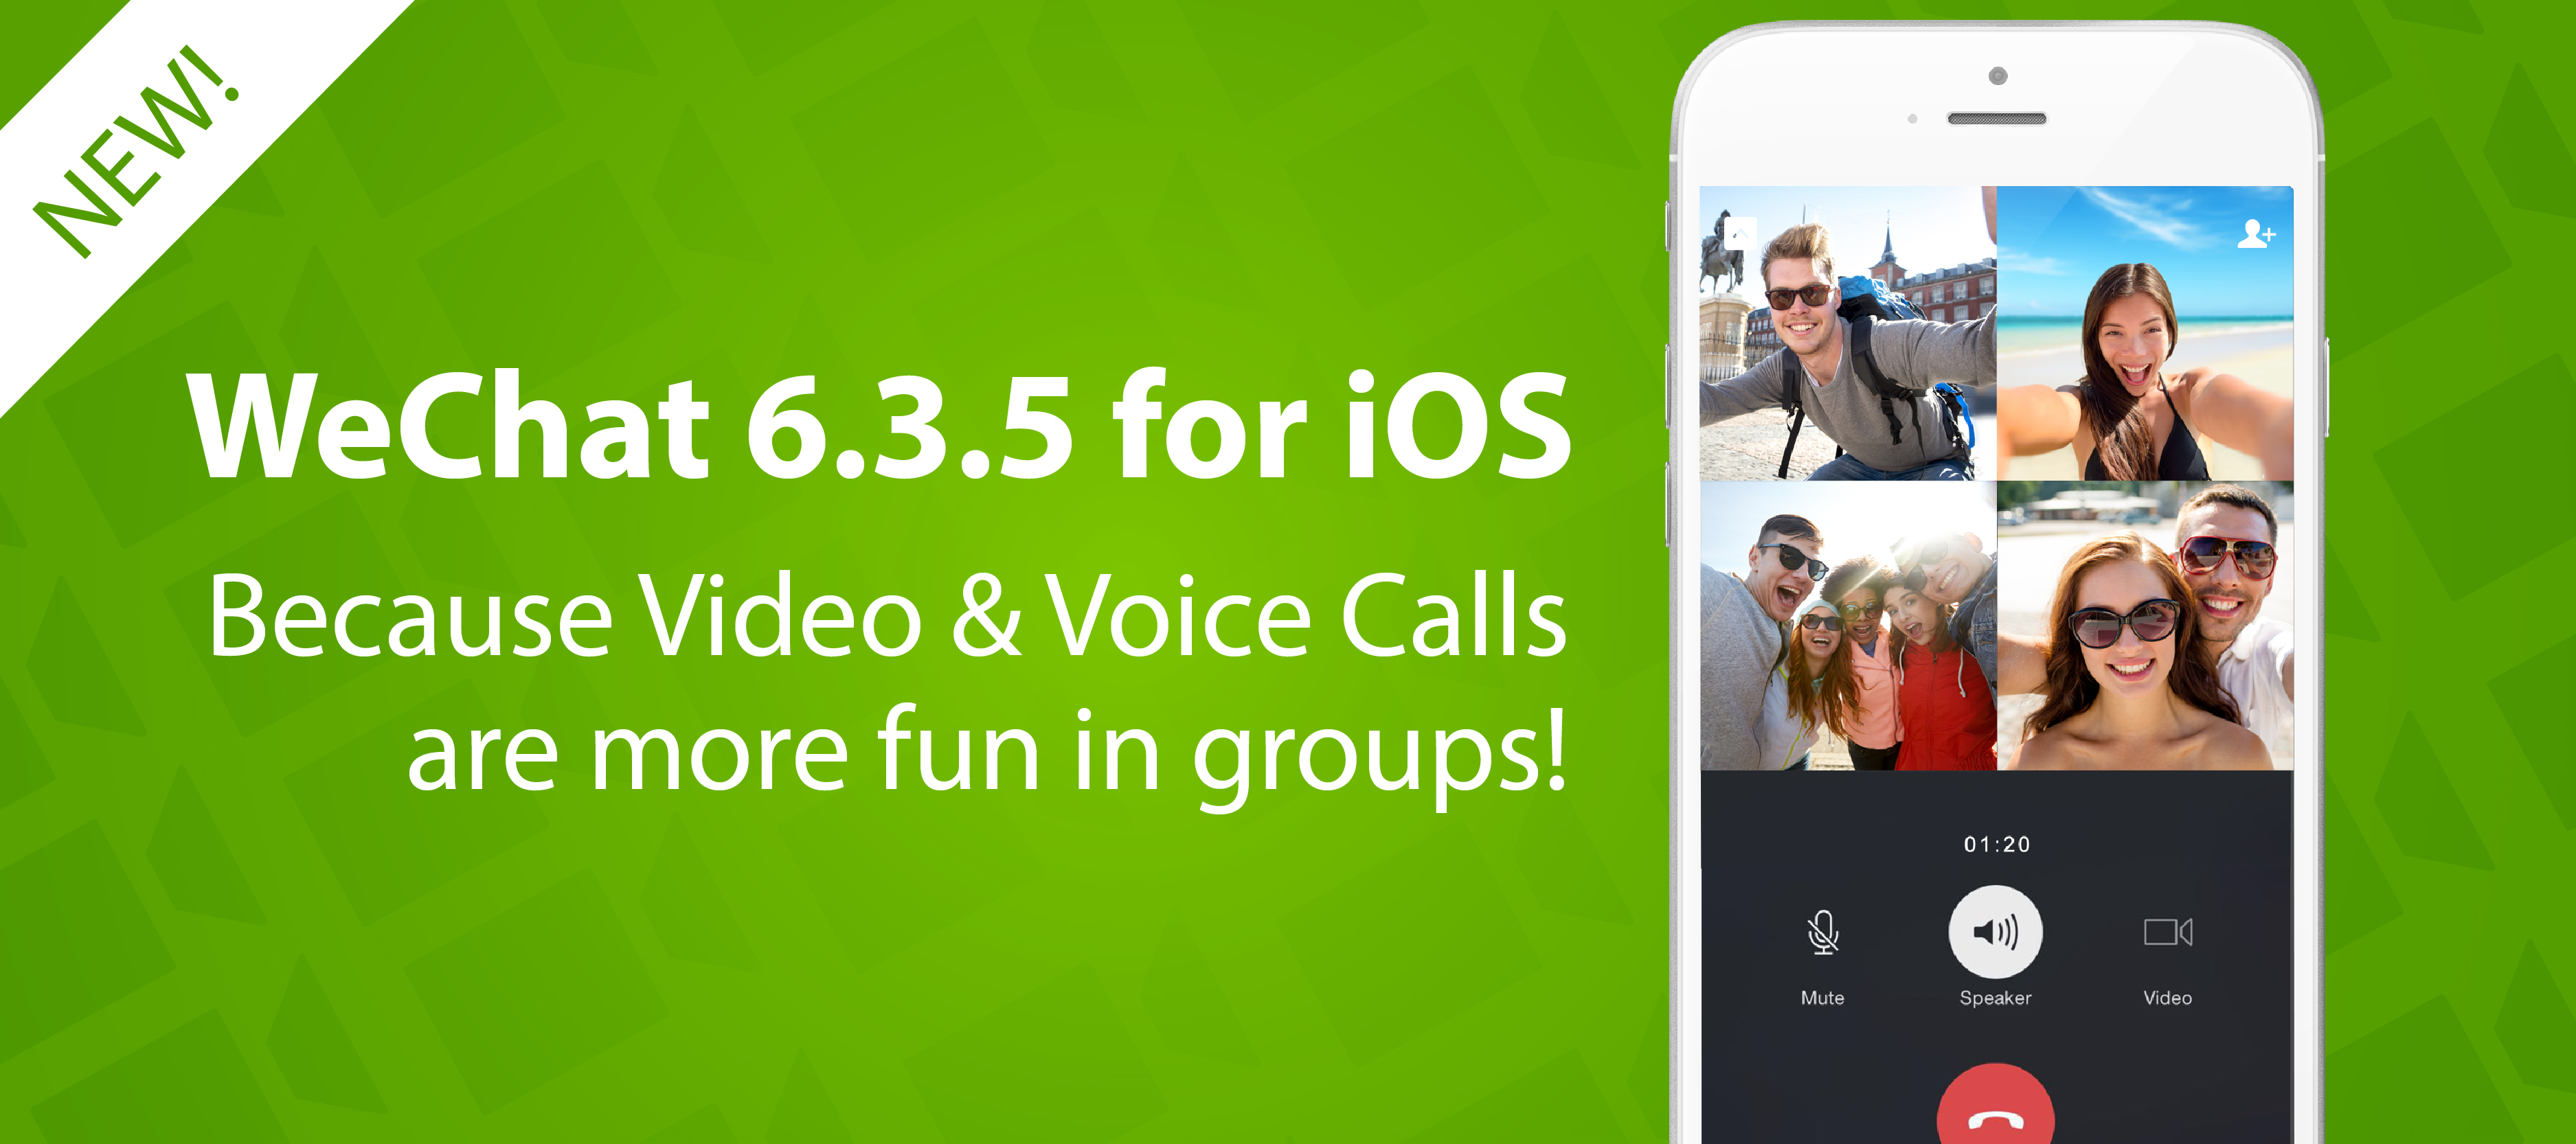 WeChat Banner_Video and Voice Call for Groups